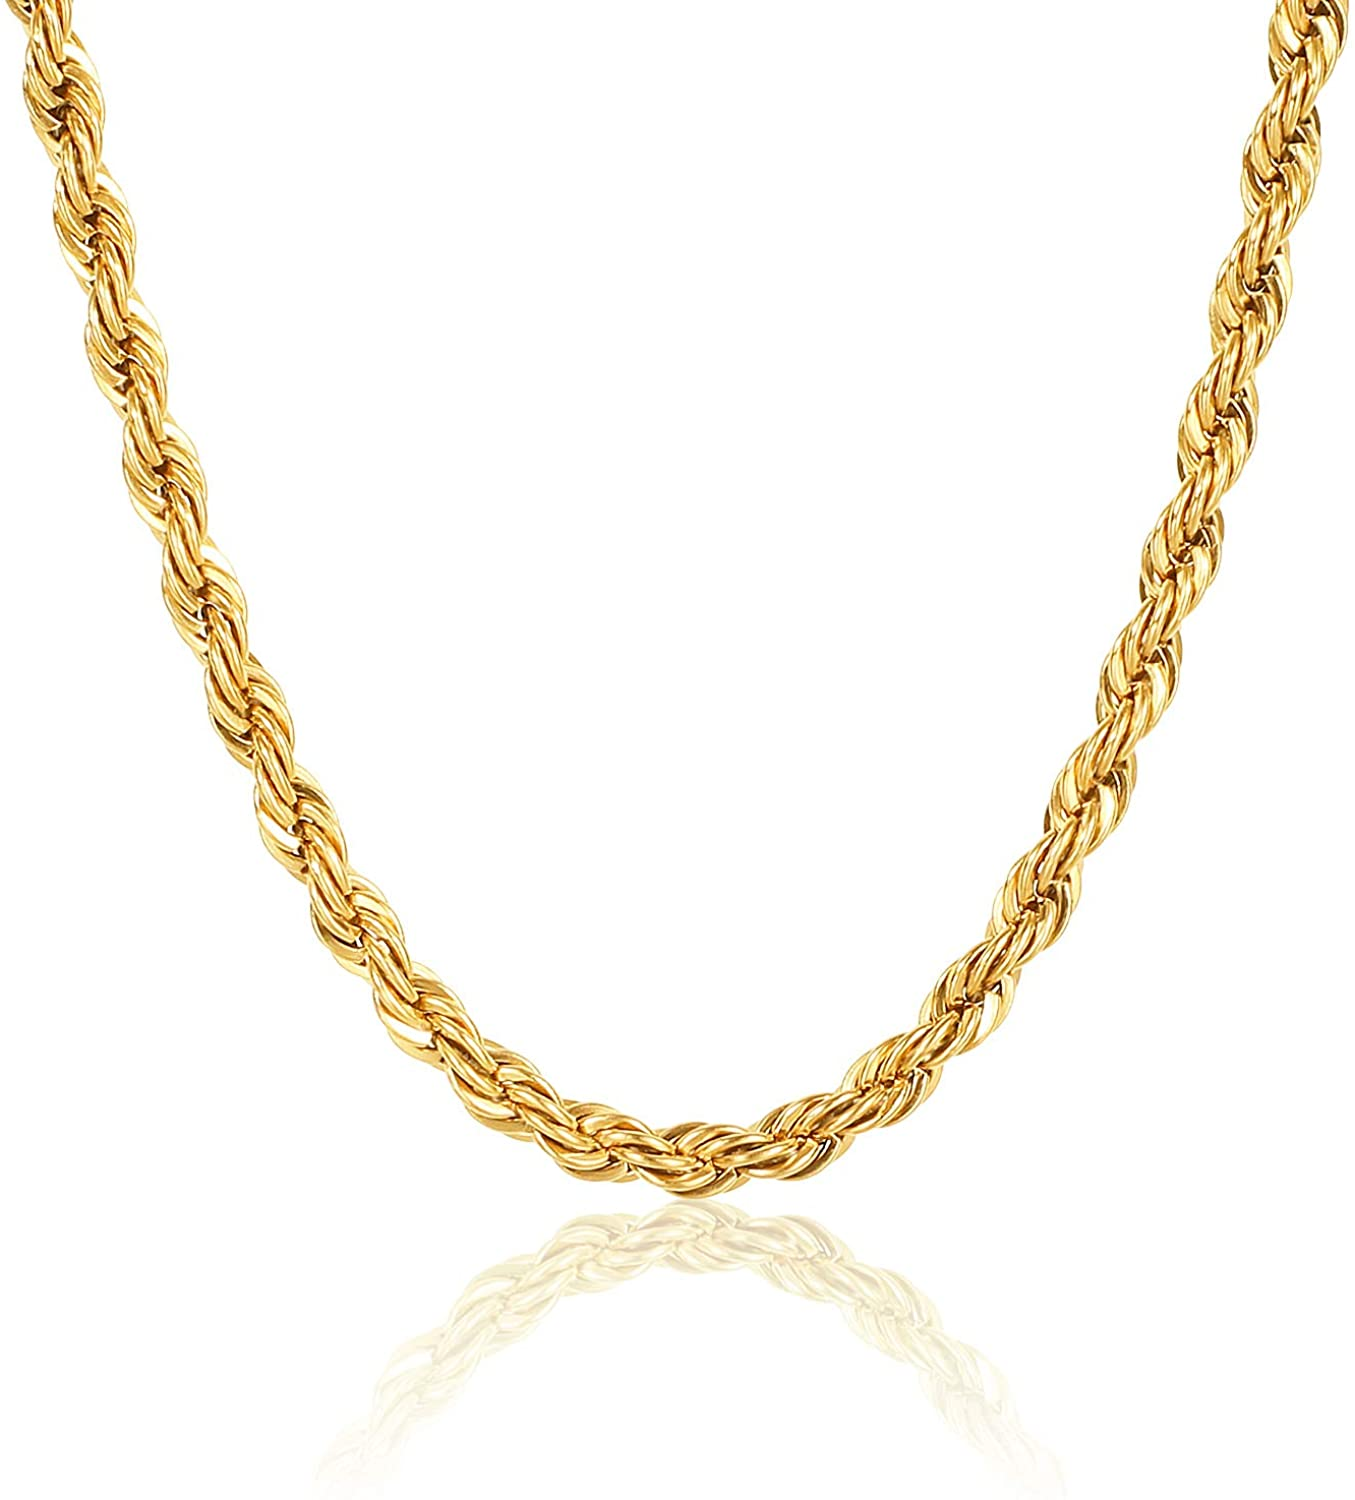 WHIPPY 18k Gold Plated Rope Chain Stainless Steel Twist Rope Necklaces for Men Women 2.5mm - 16, 18, 20, 22, 24 Inches